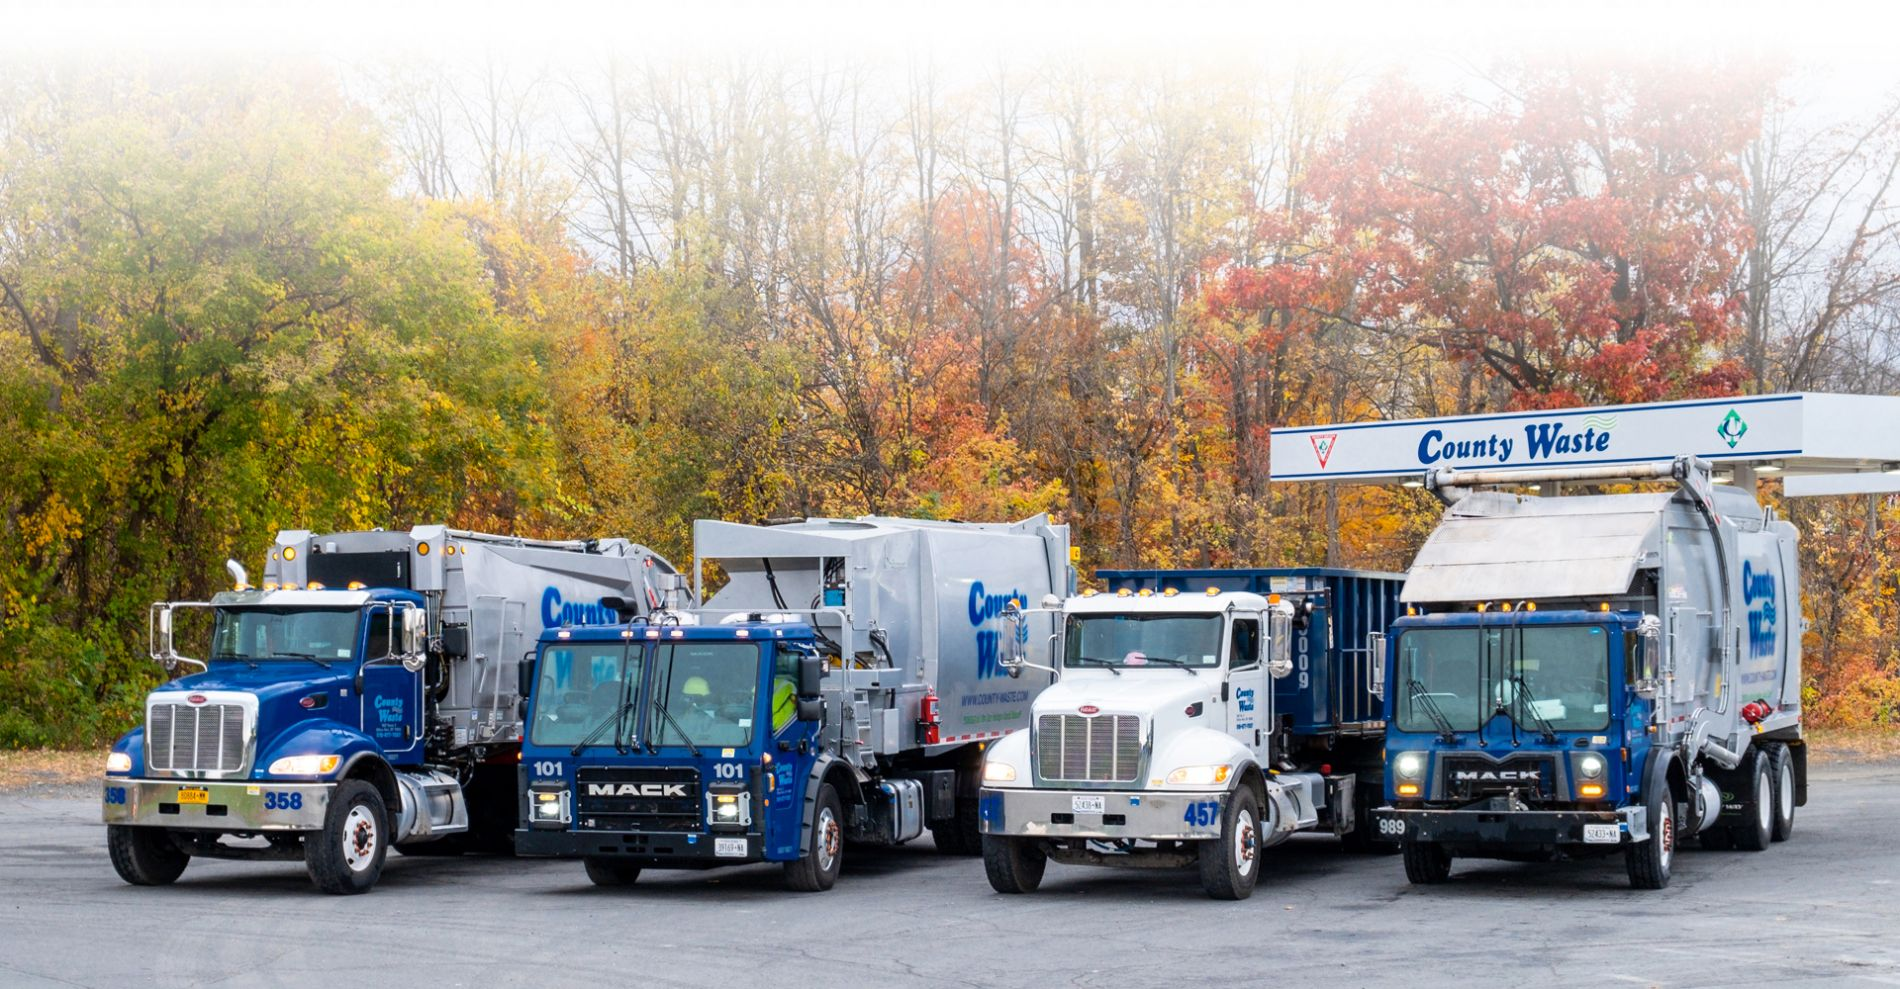 County Waste NY invests in the Capital Region environment waste management infrastructure